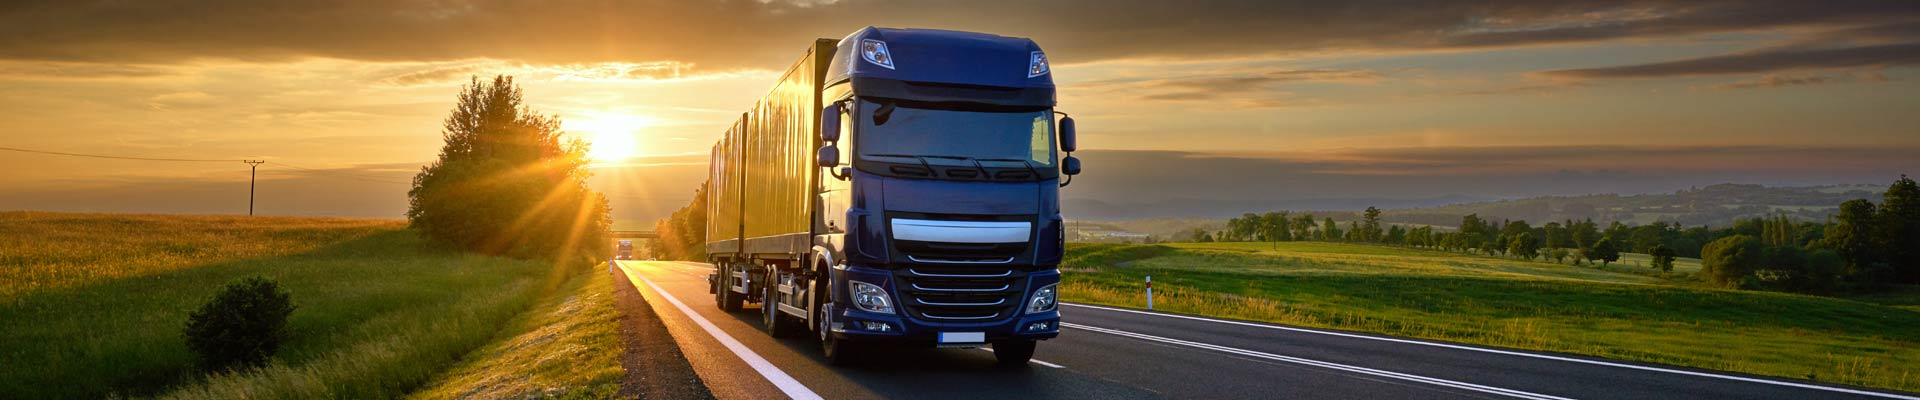 Delivery-Trucks-on-the-highway-morning-Stock-Photo-01